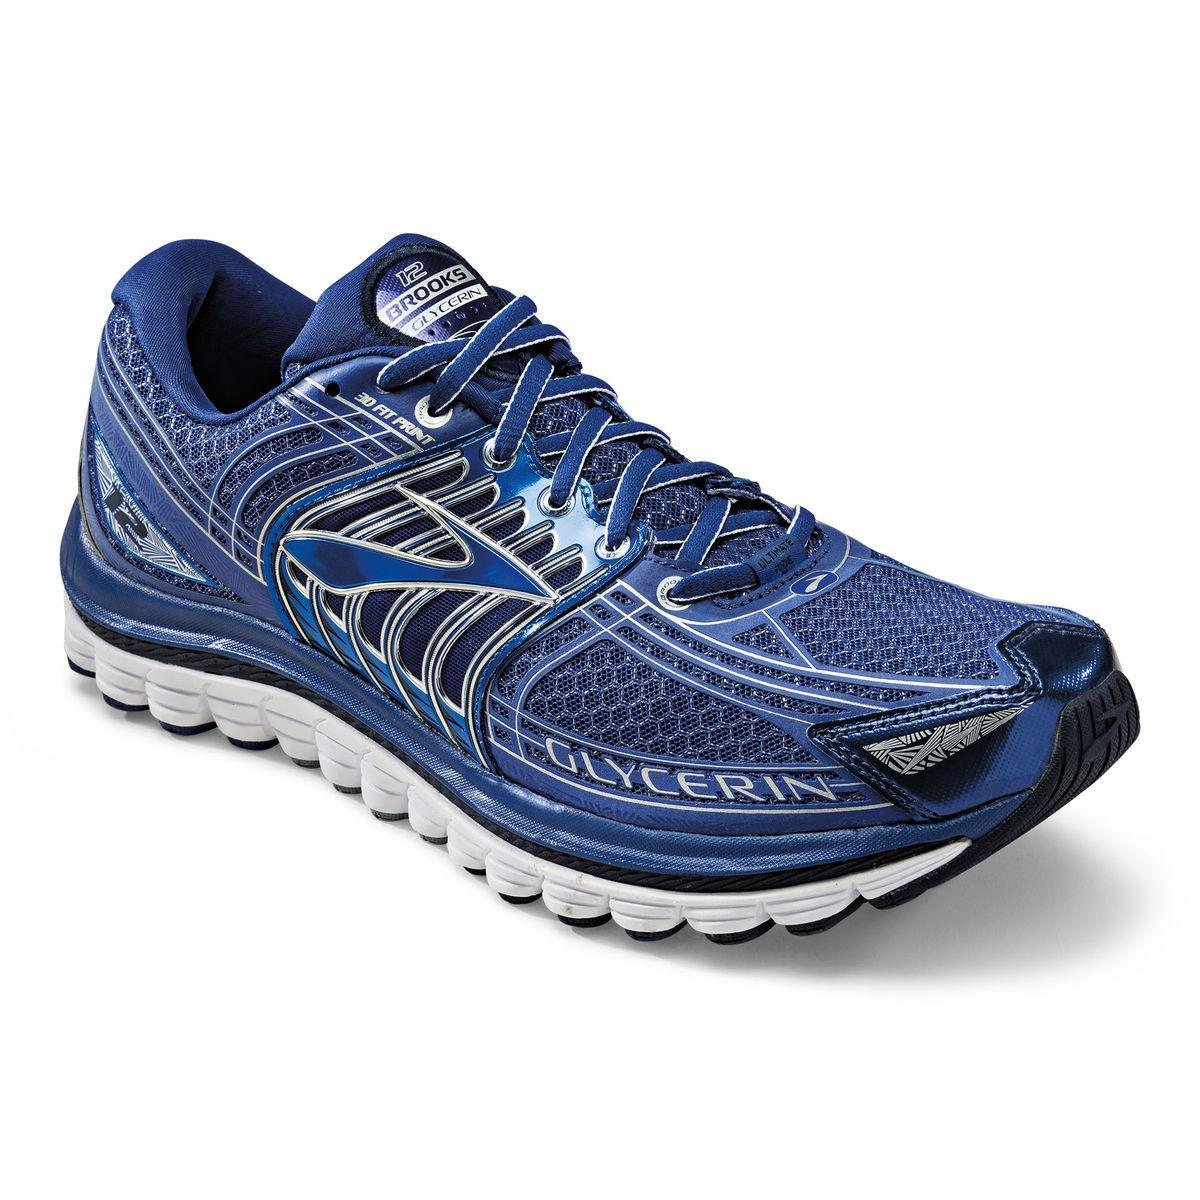 bc6070d8154d Brooks Mens Glycerin 12 Running Shoes - Sodalite Blue - Tennisnuts.com